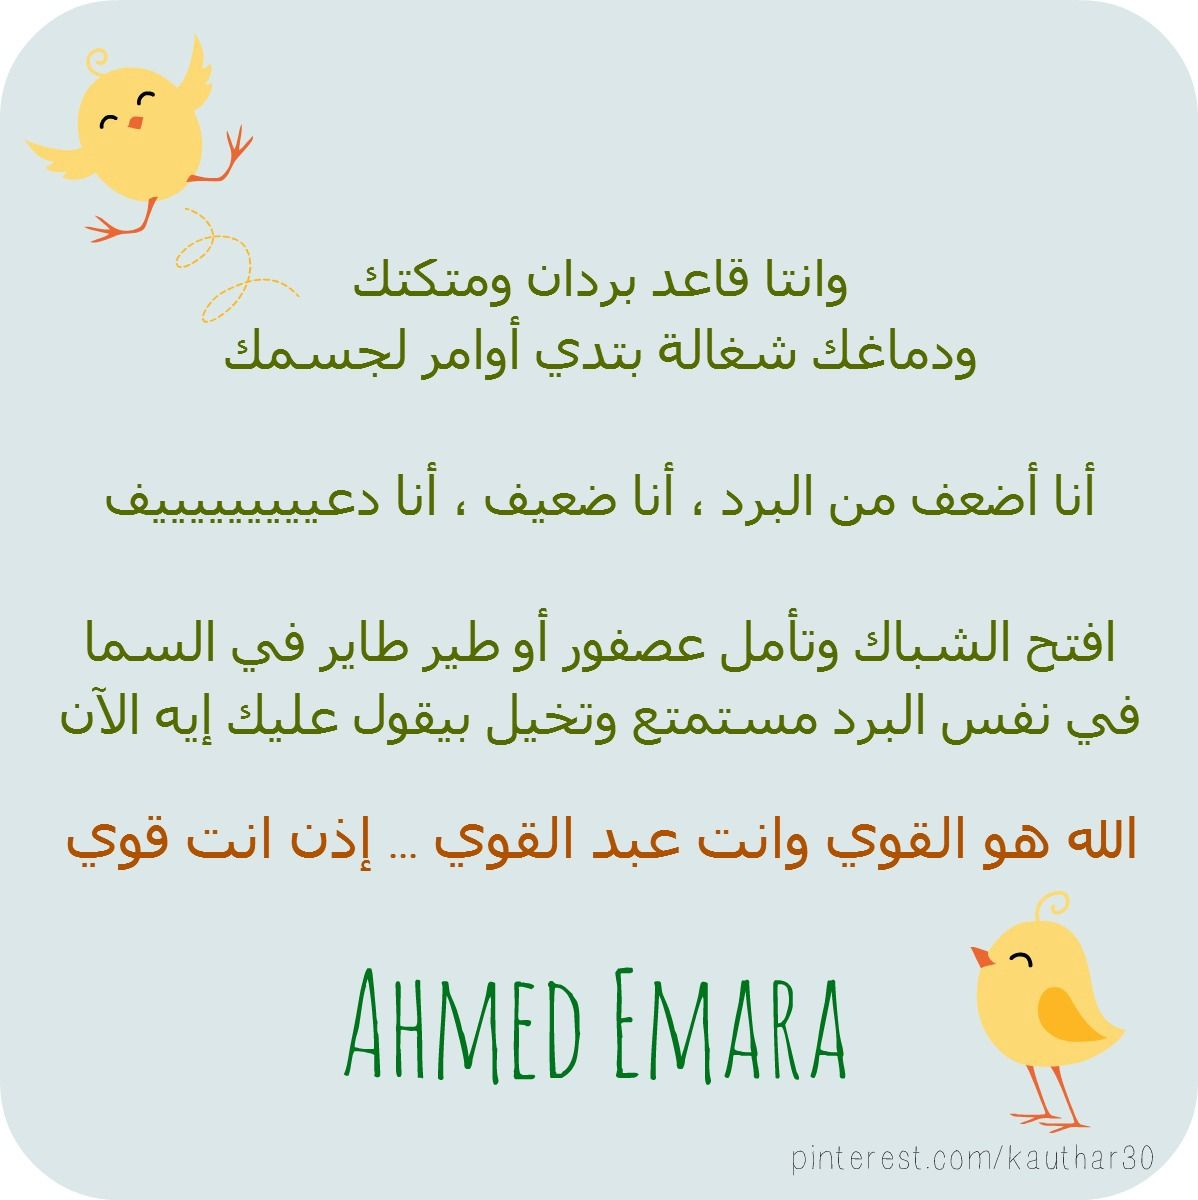 The Bet Short Story Quotes: Pin By [ K A U T H A R ] On Dr Ahmed Emara مقالات د. أحمد